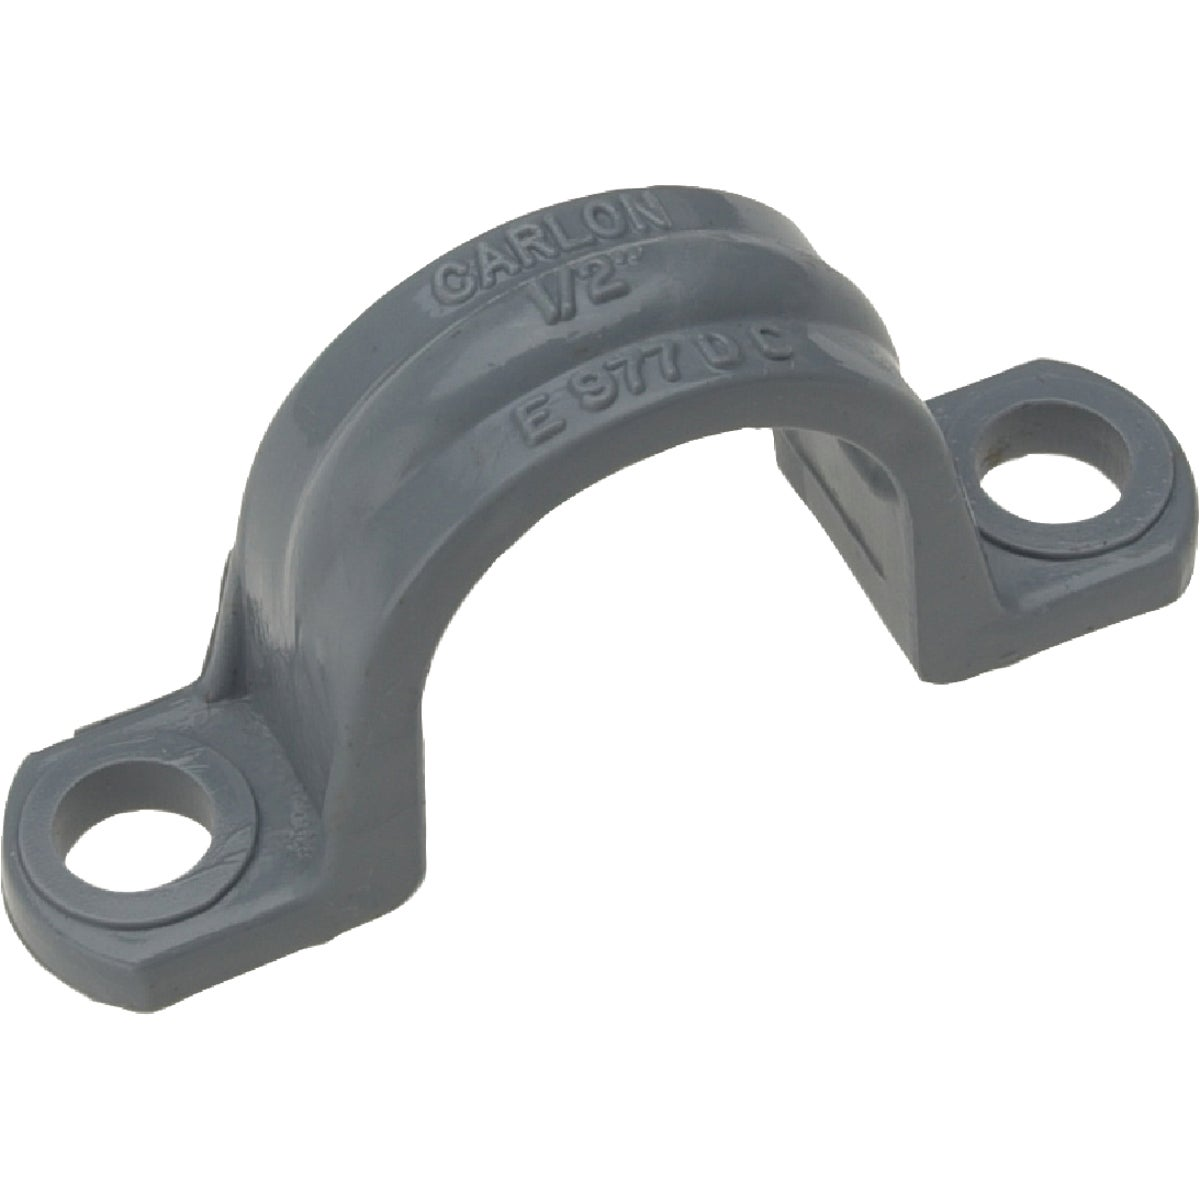 "5 PK 1/2"" PVC STRAP - E977DCCTN by Thomas & Betts"